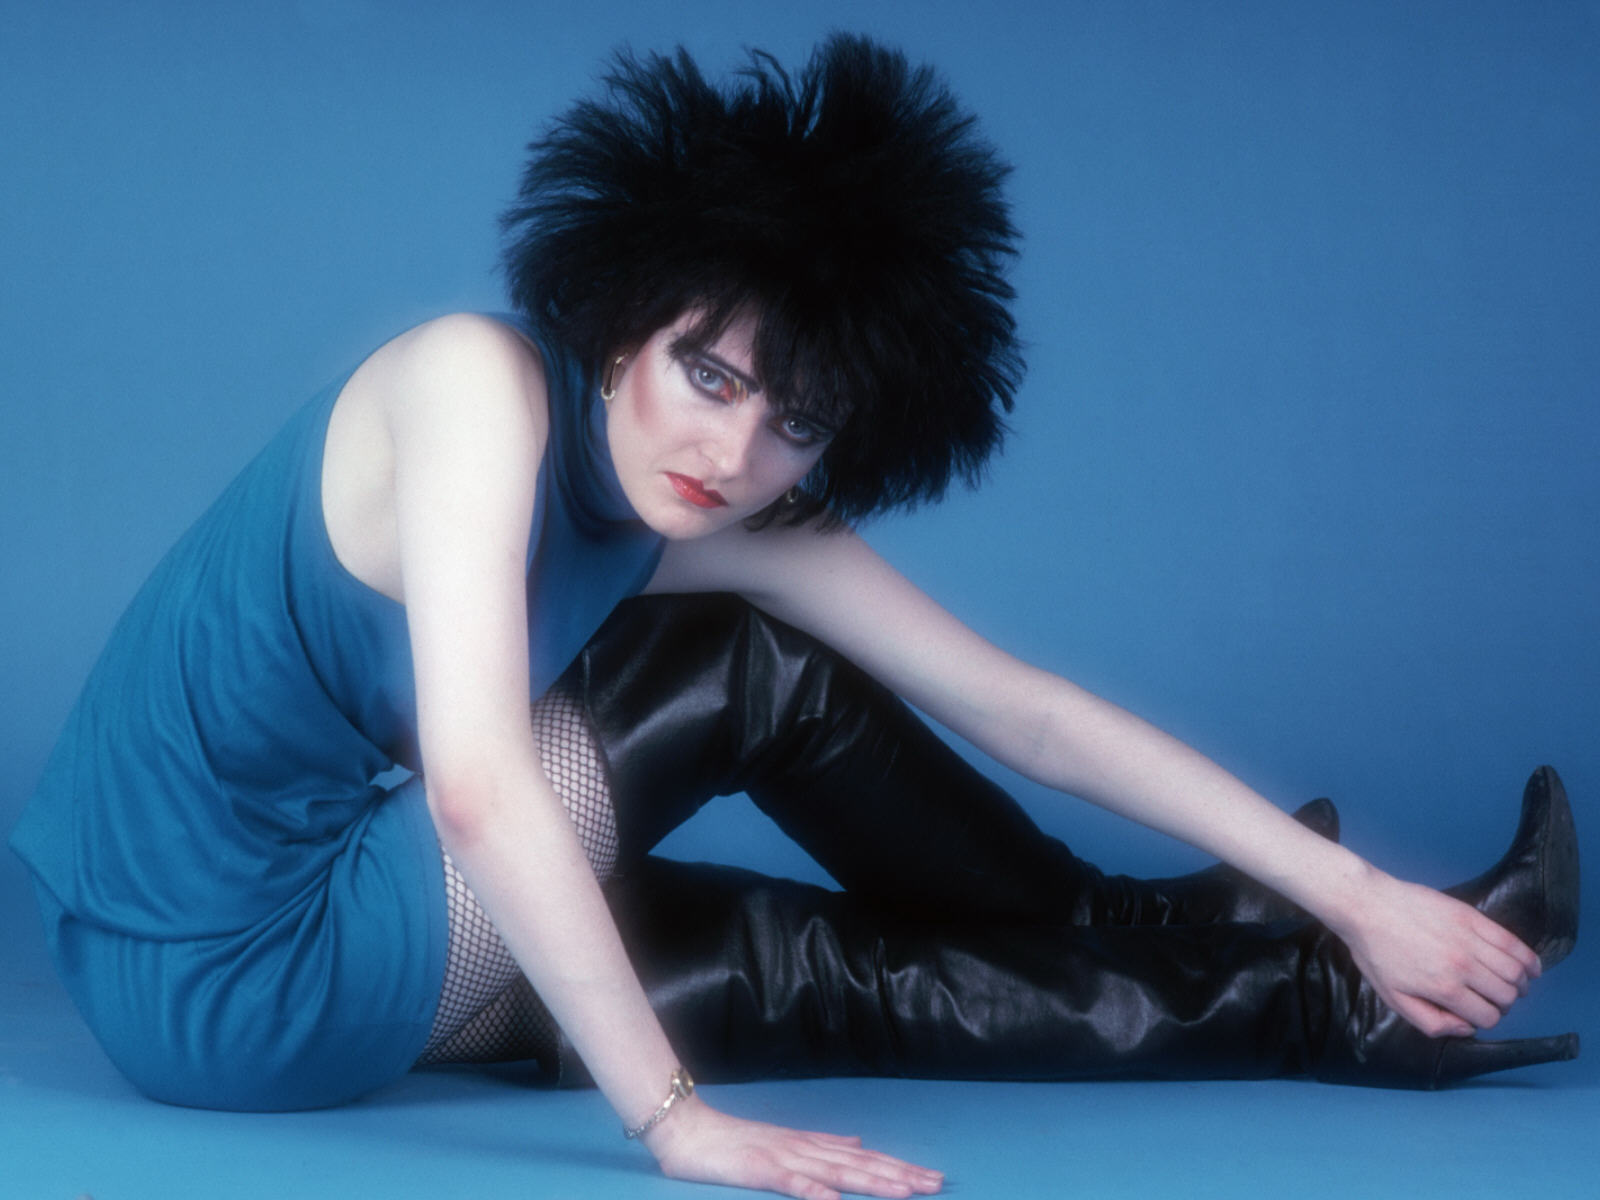 Siouxsie Wallpaper Galareal